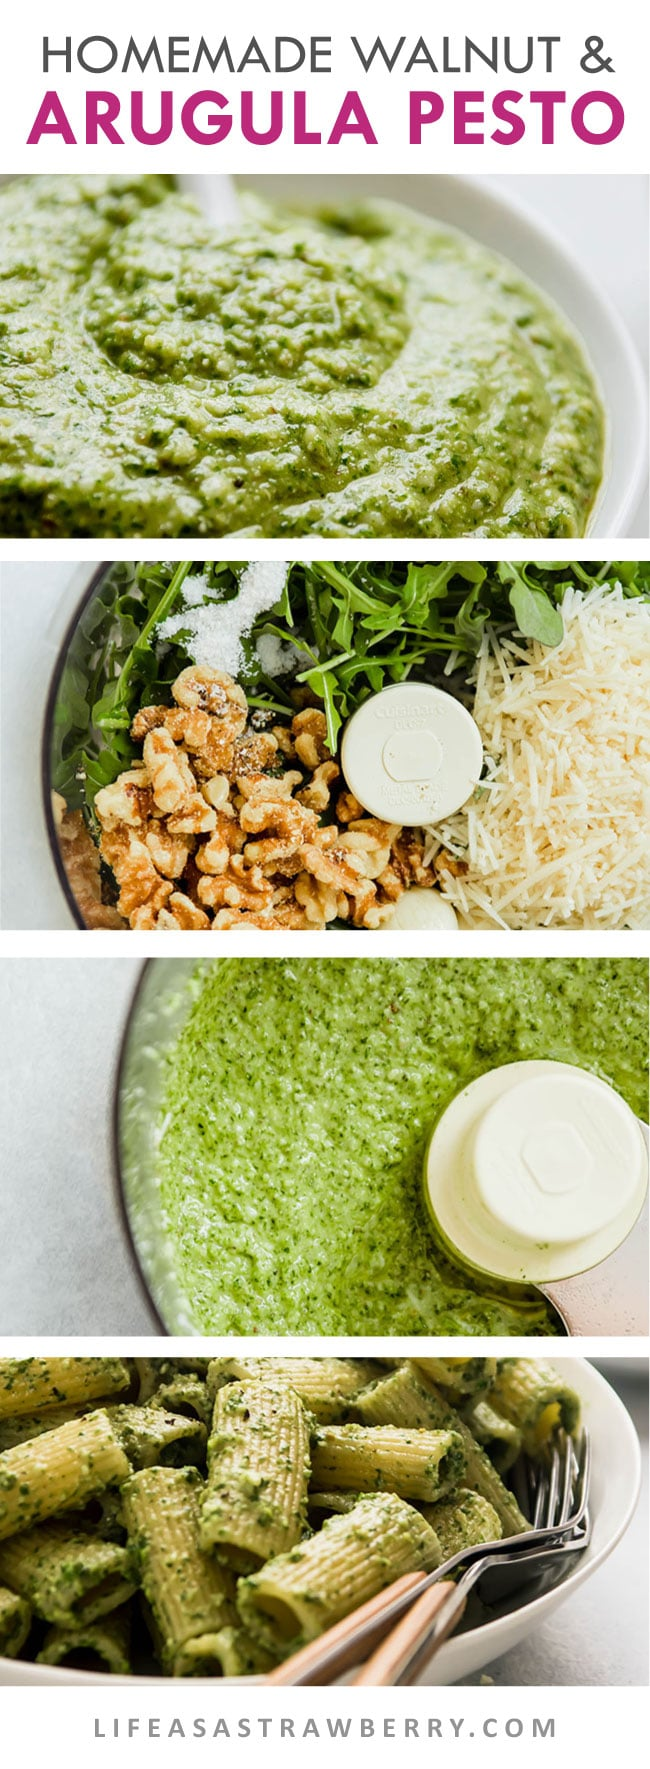 Graphic with step-by-step photos of arugula pesto being made